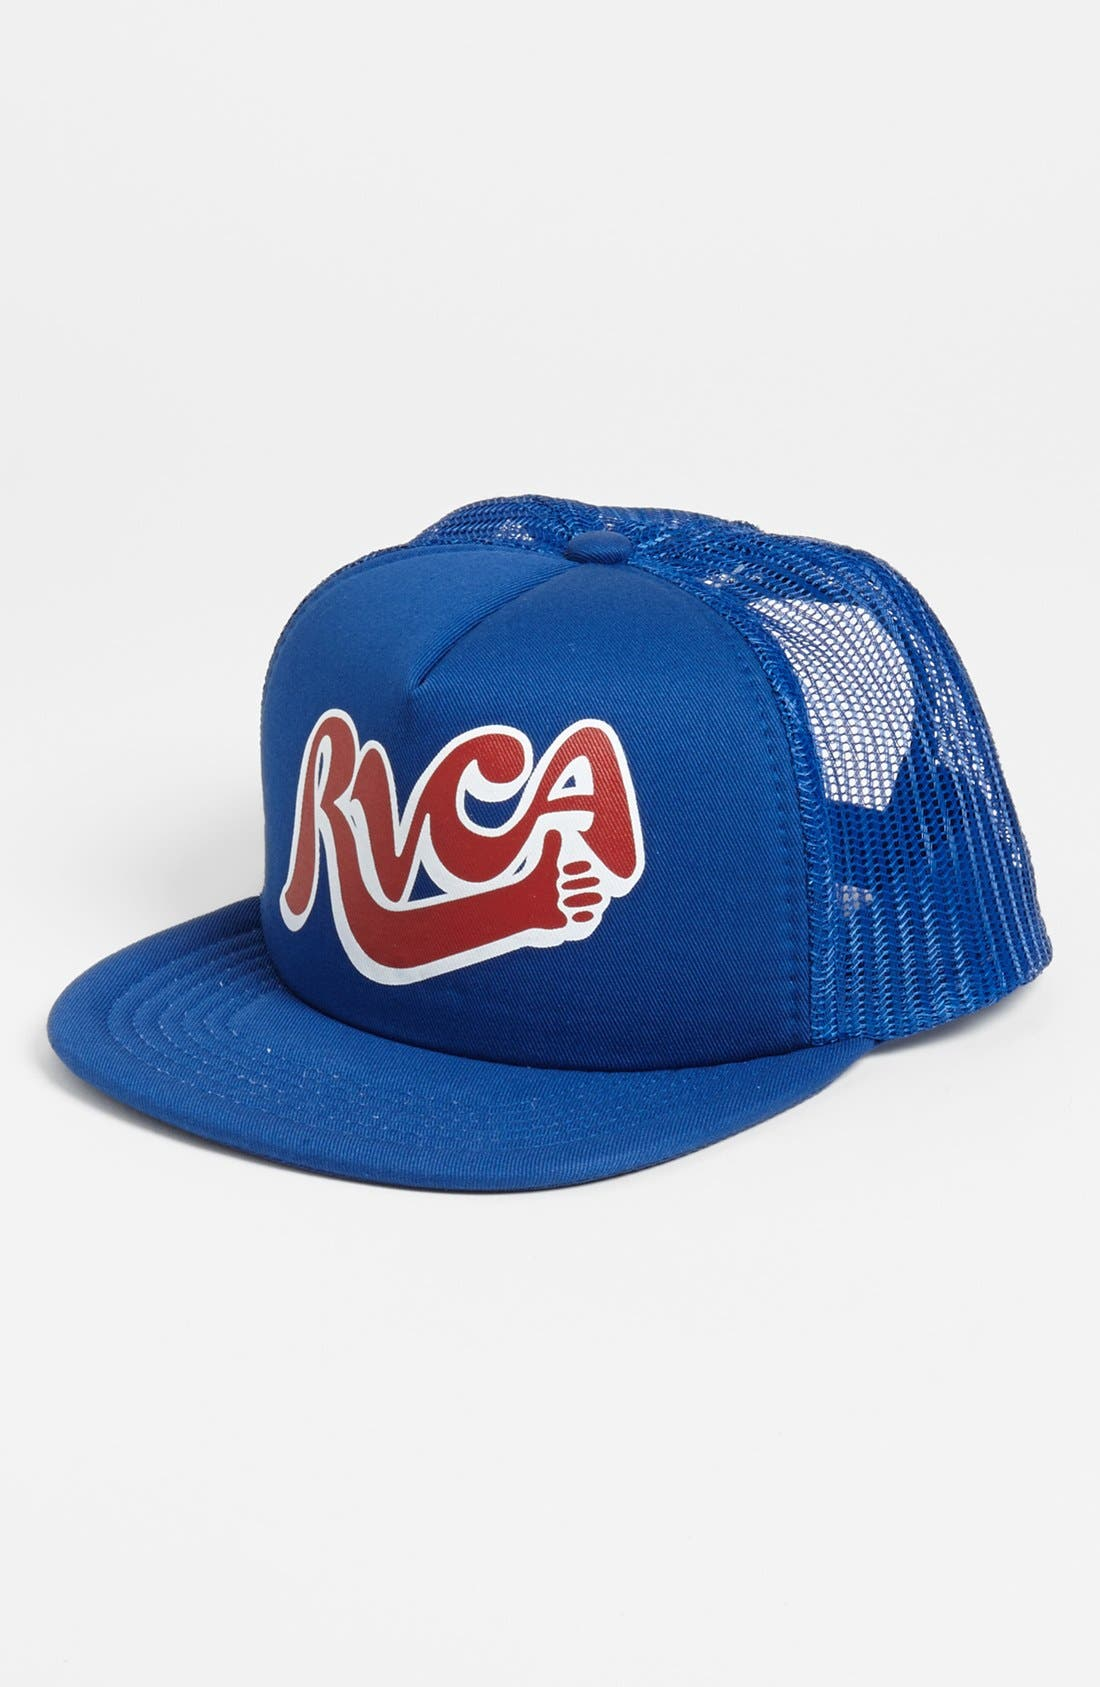 Alternate Image 1 Selected - RVCA Trucker Hat (Big Boys)